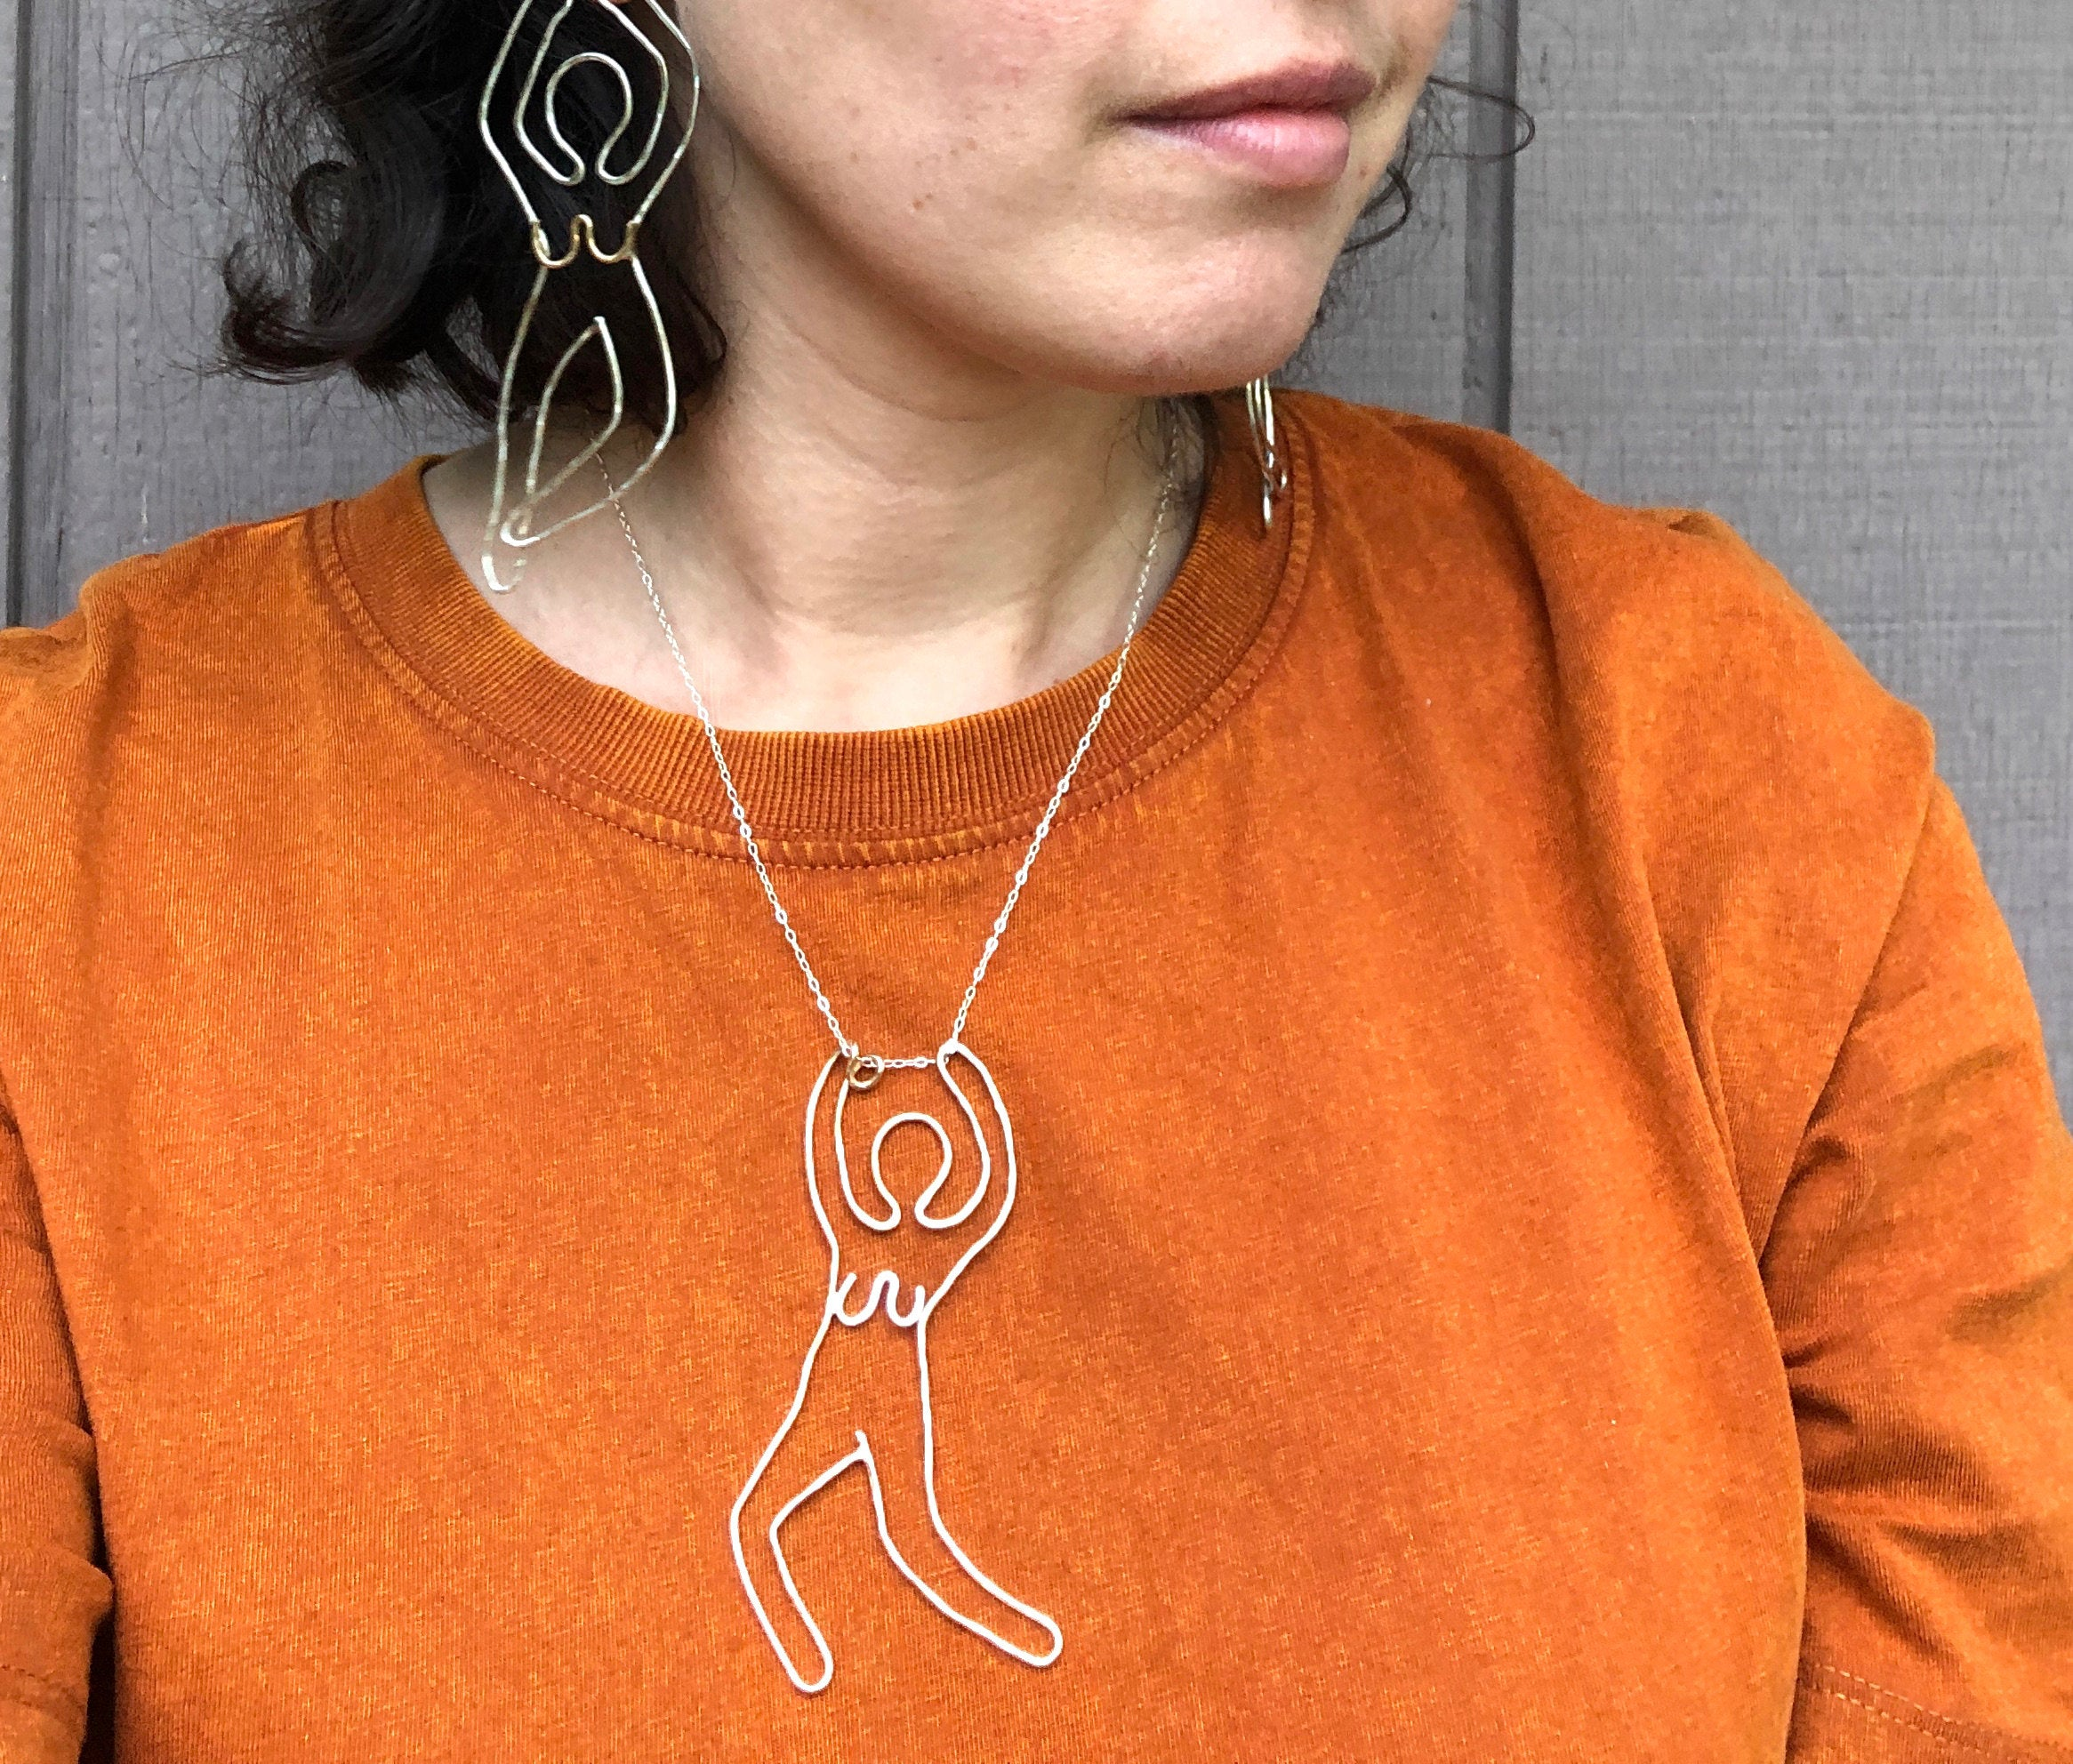 Dancing Queen Necklace Handmade Sculptural Dancing Form One of a Kind Abstract Necklace